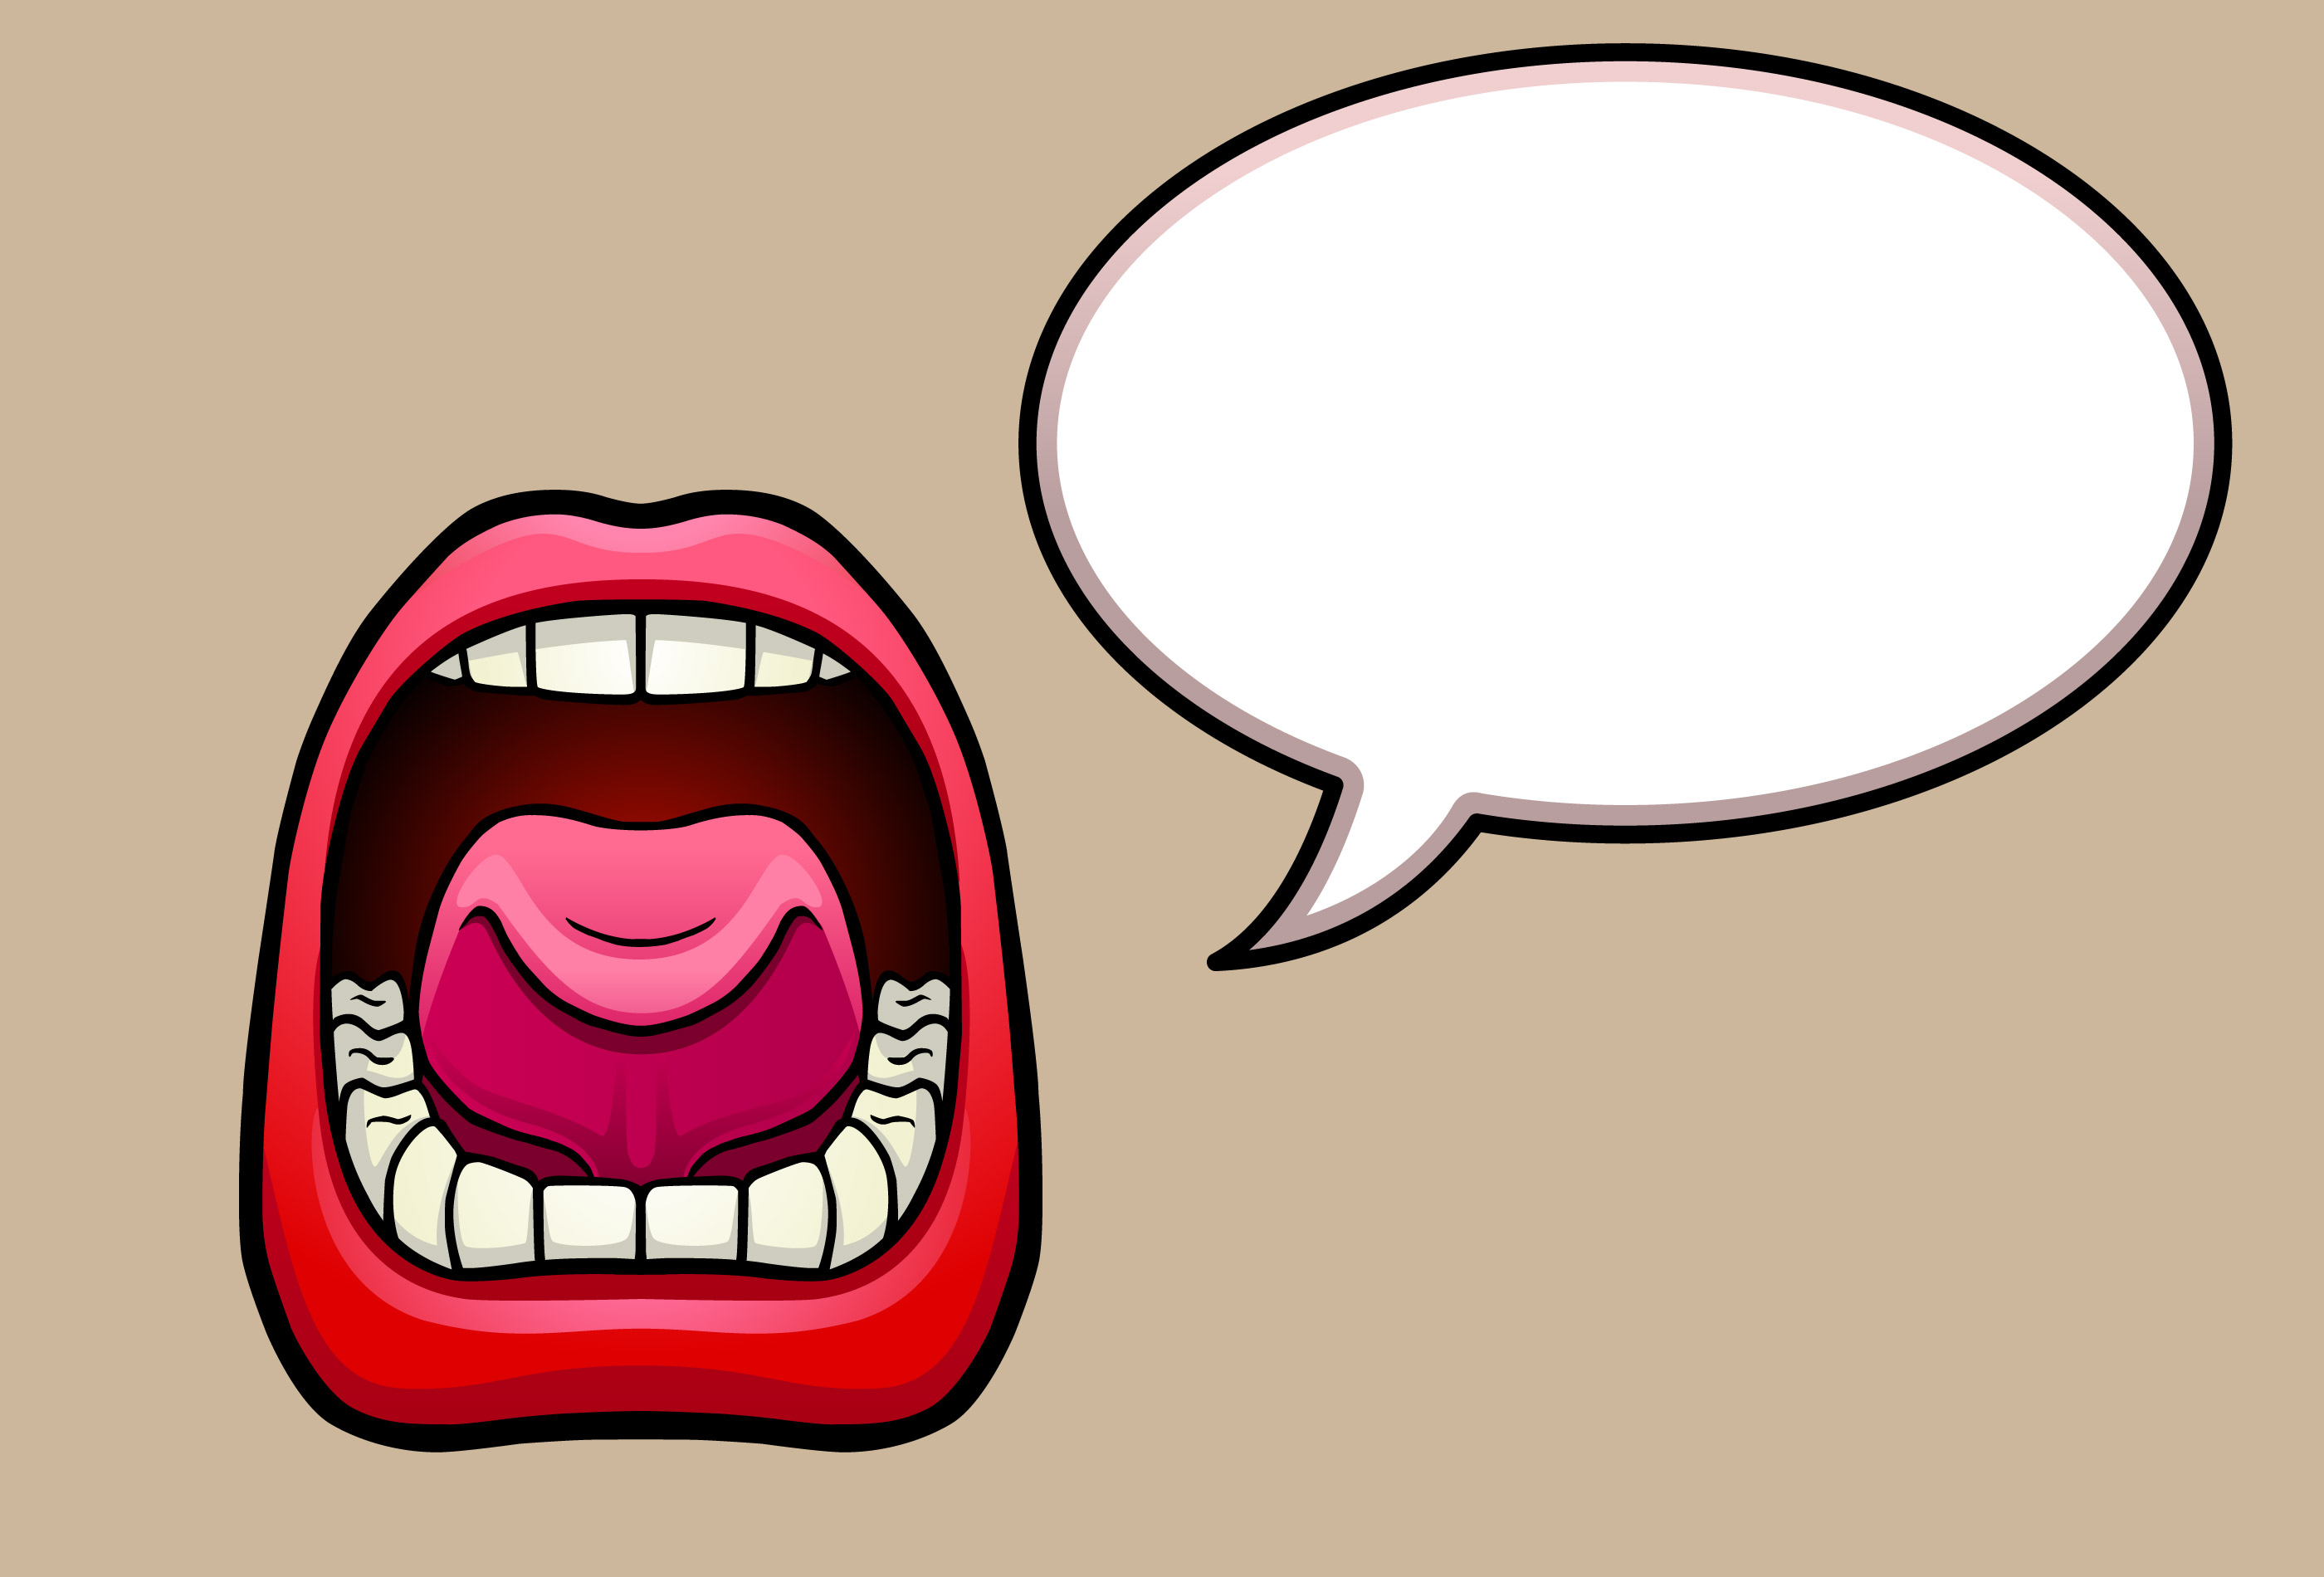 Clipart showing profile view of mouth speaking png free stock Free Open Mouth Clipart, Download Free Clip Art, Free Clip Art on ... png free stock